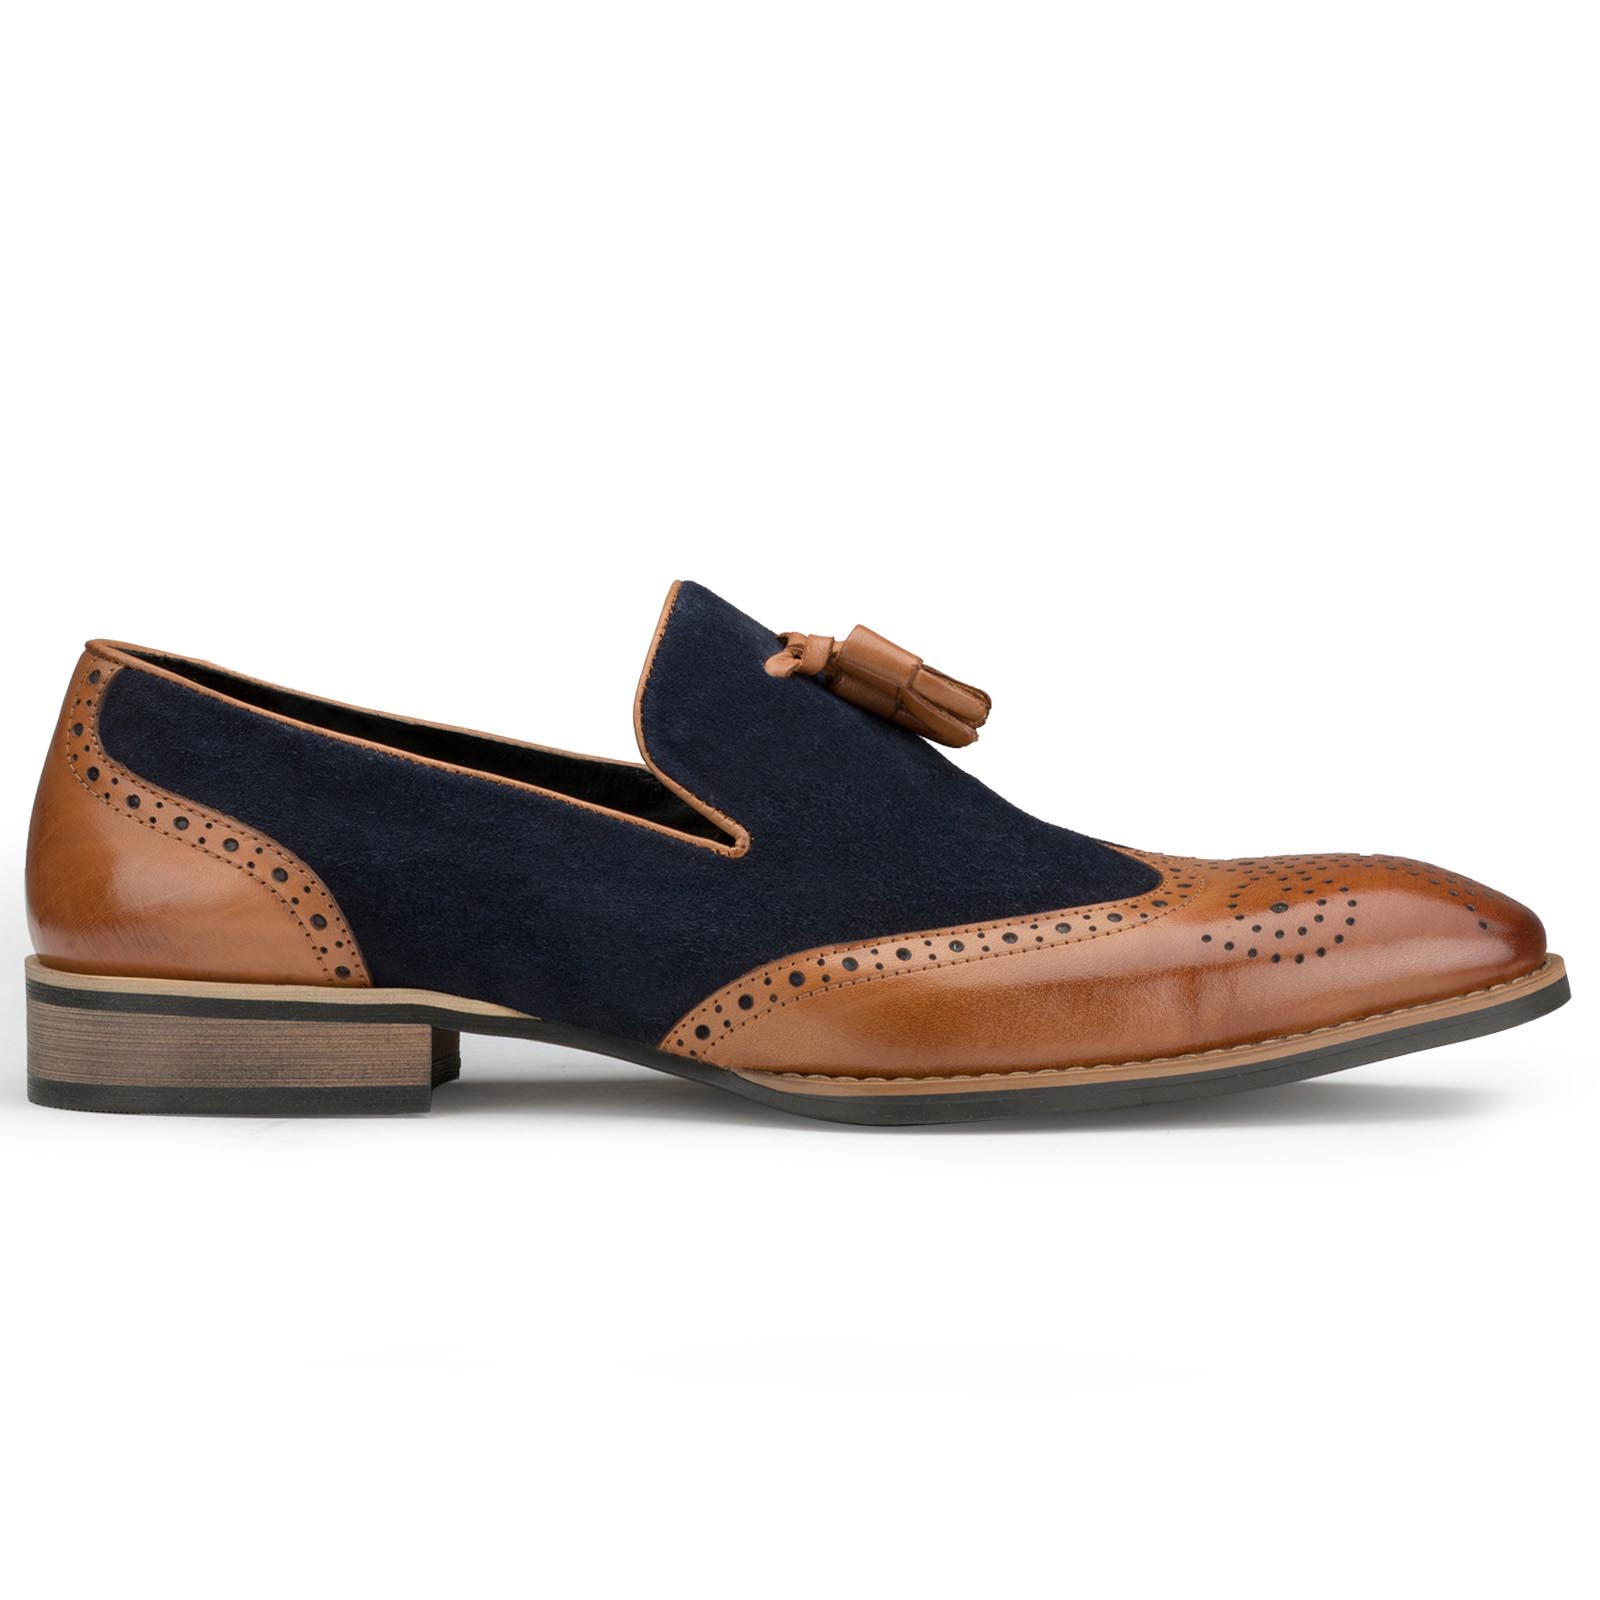 Blue-Tan Wingtip Tassel Loafers